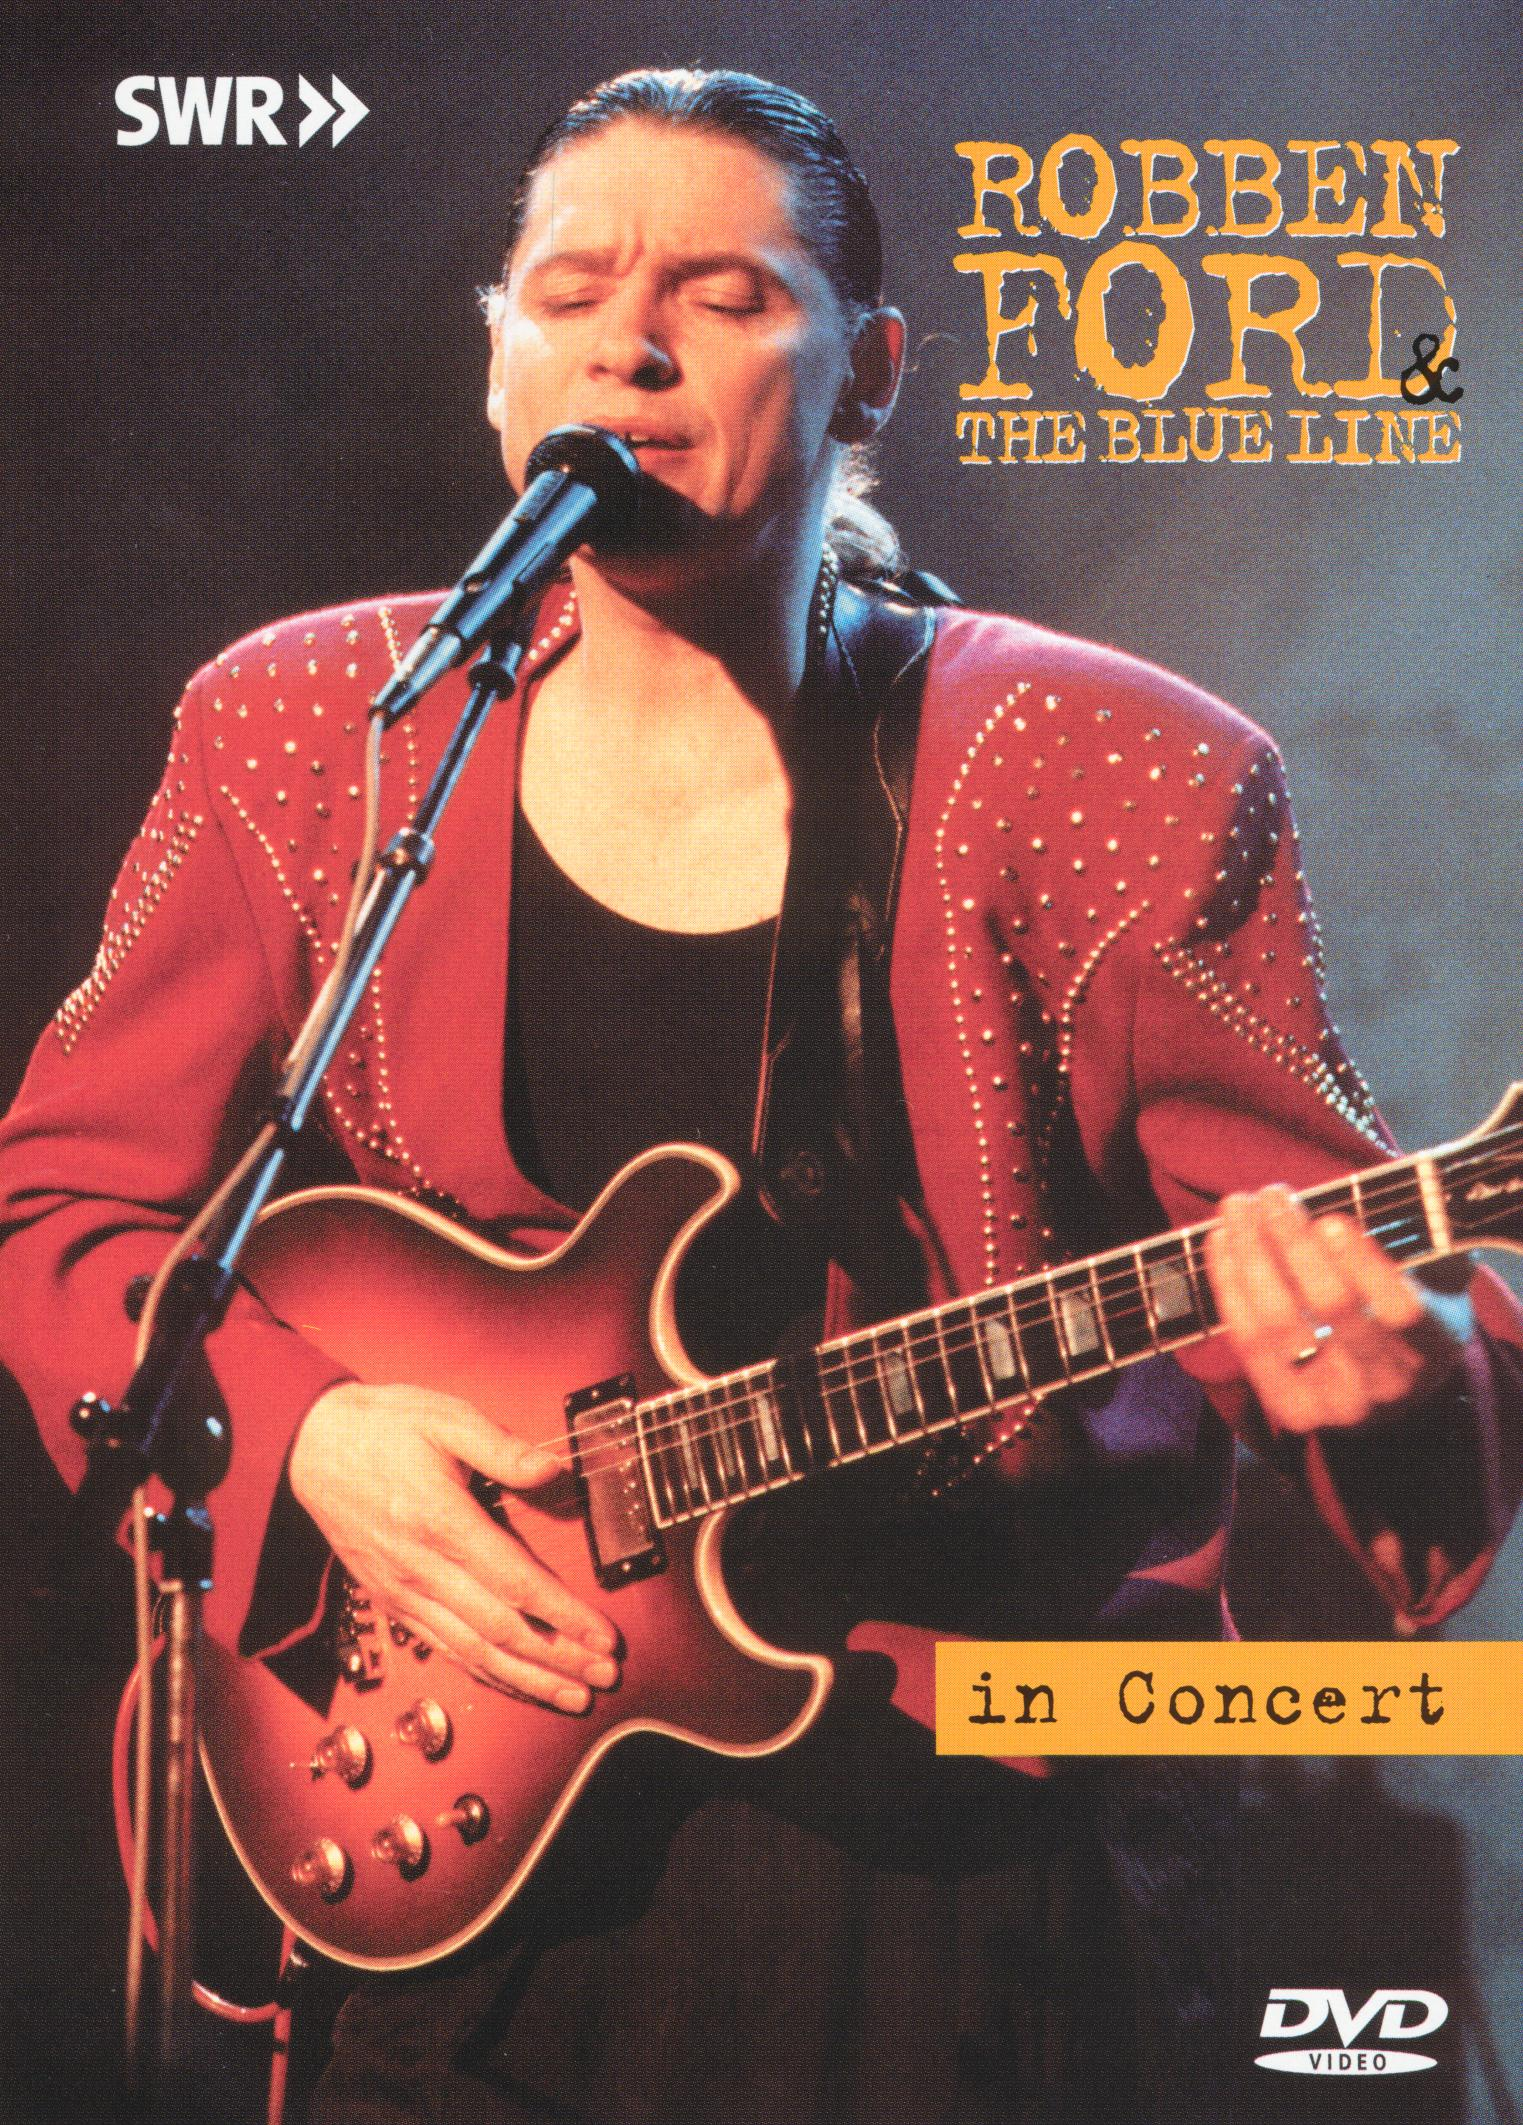 Ohne Filter - Musik Pur: Robben Ford & The Blue Line in Concert